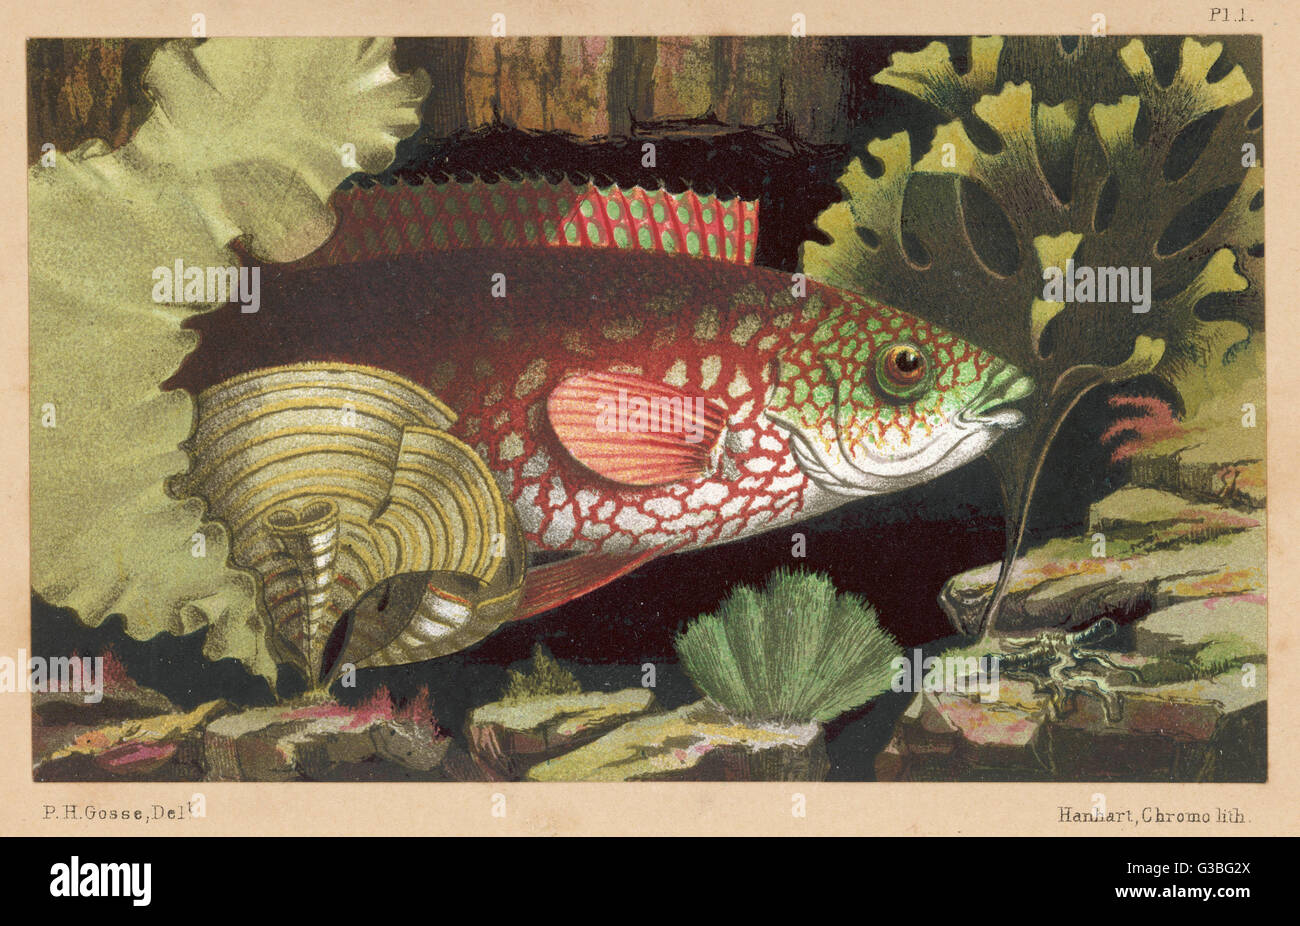 An 'ancient' wrasse.         Date: 1856 - Stock Image